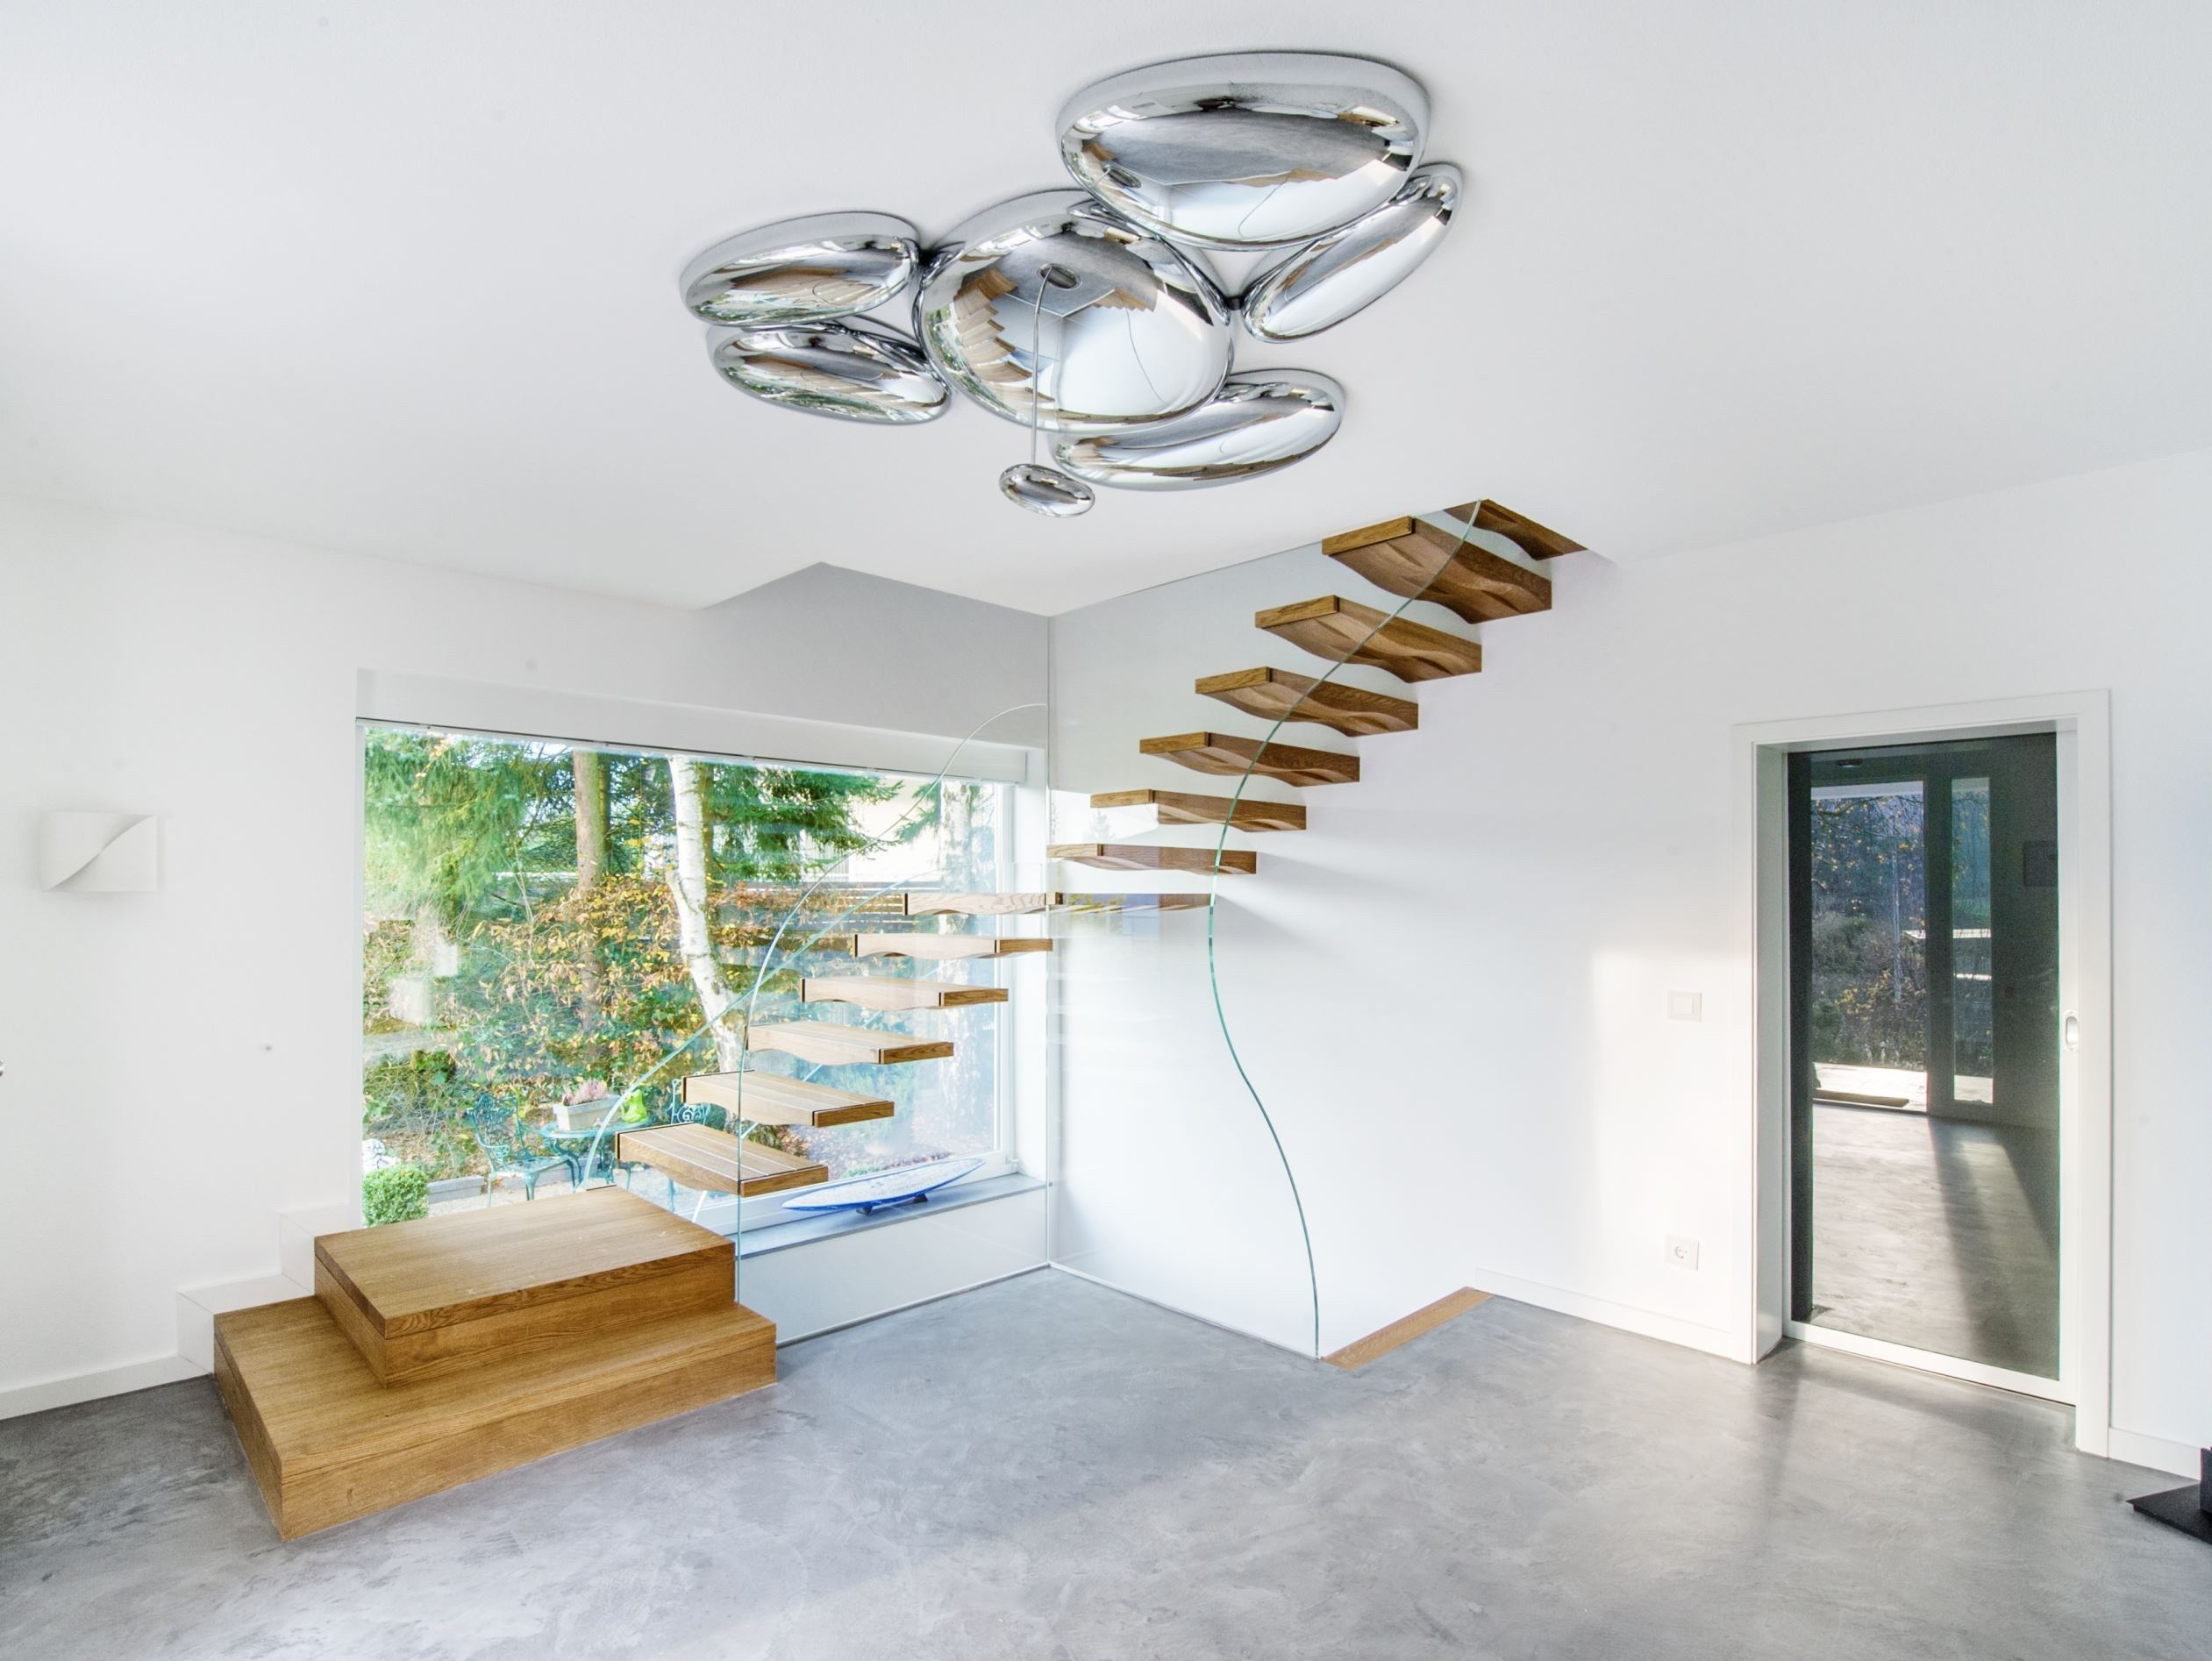 L Shaped U Shaped Steel Cantilevered Staircase In Kit Form WALL By Fontanot